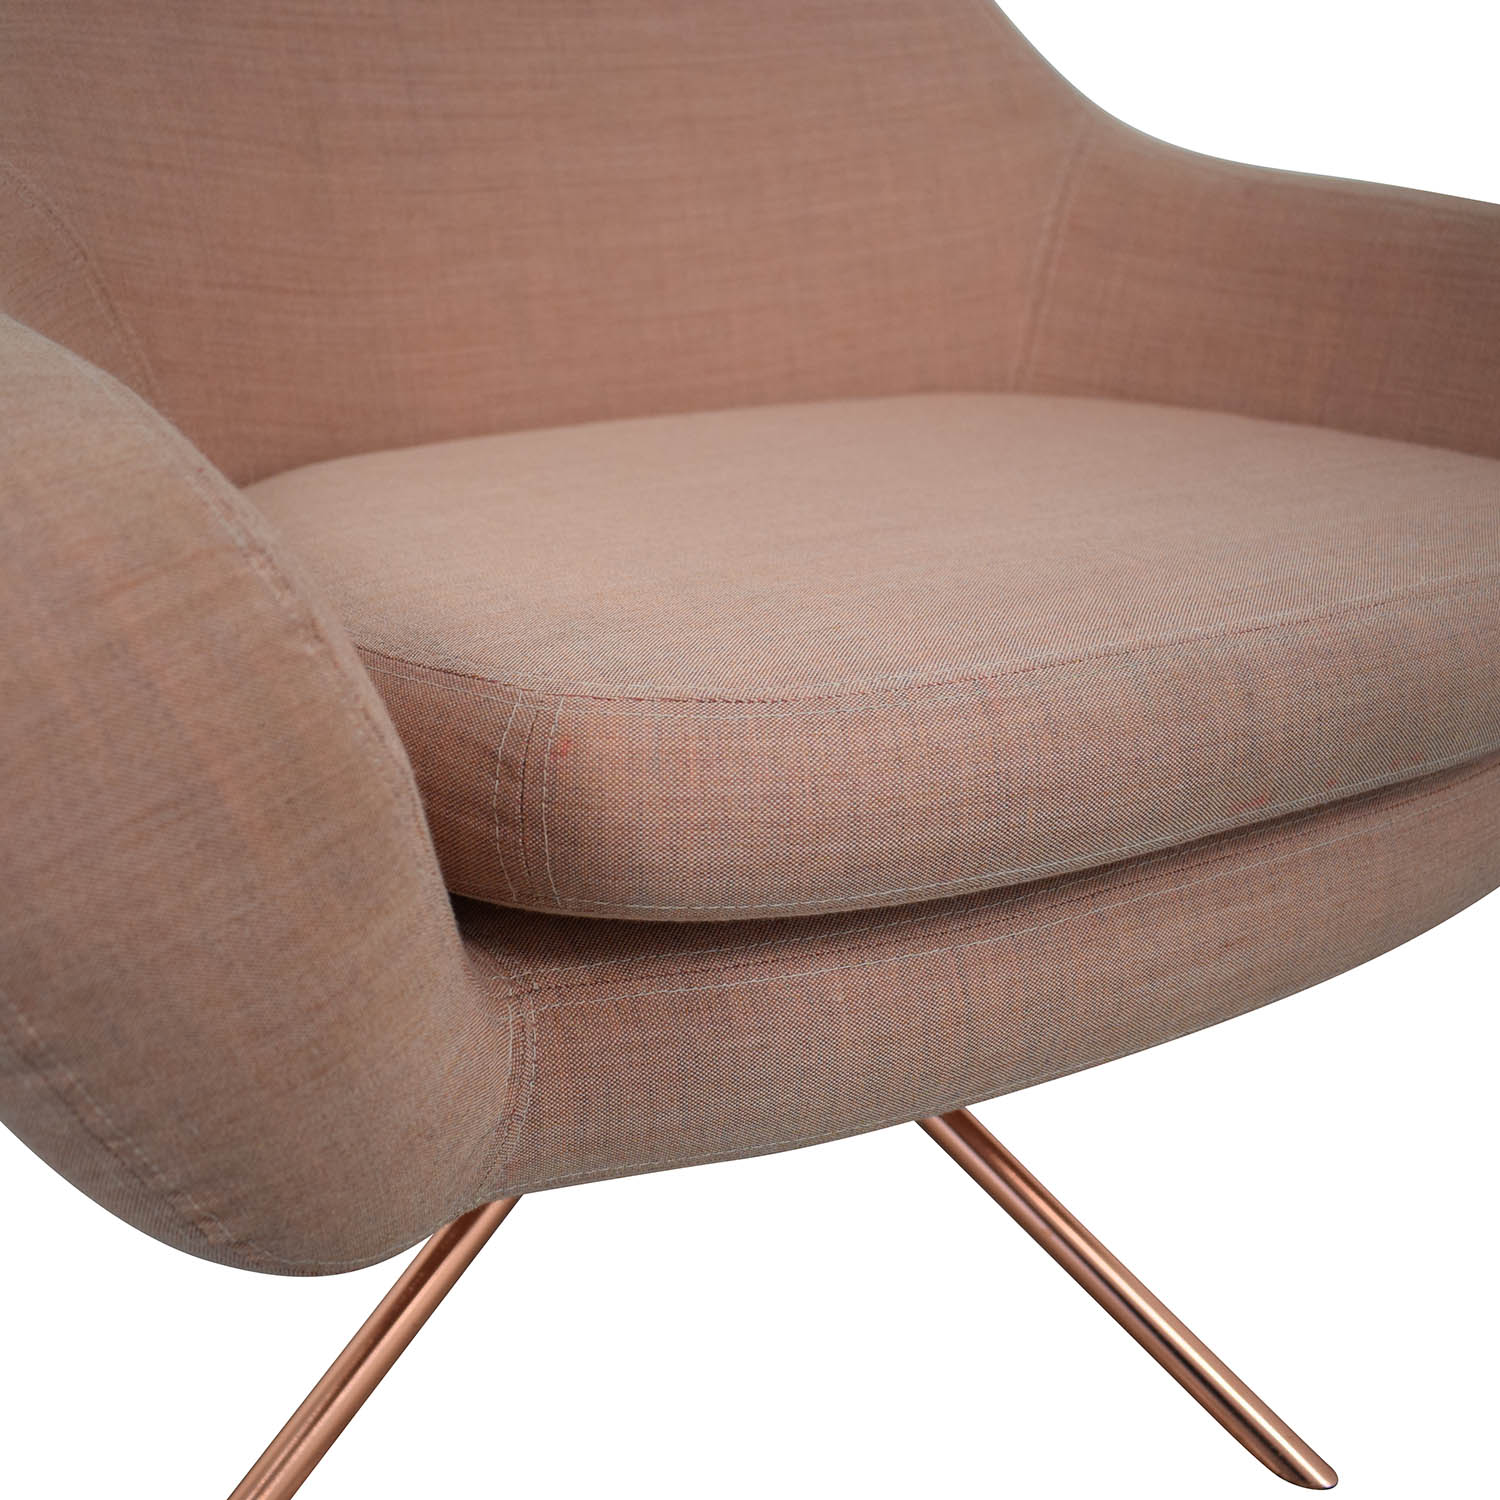 Fantastic 68 Off Softline Softline Noomi Swivel Lounge Chair Chairs Pdpeps Interior Chair Design Pdpepsorg